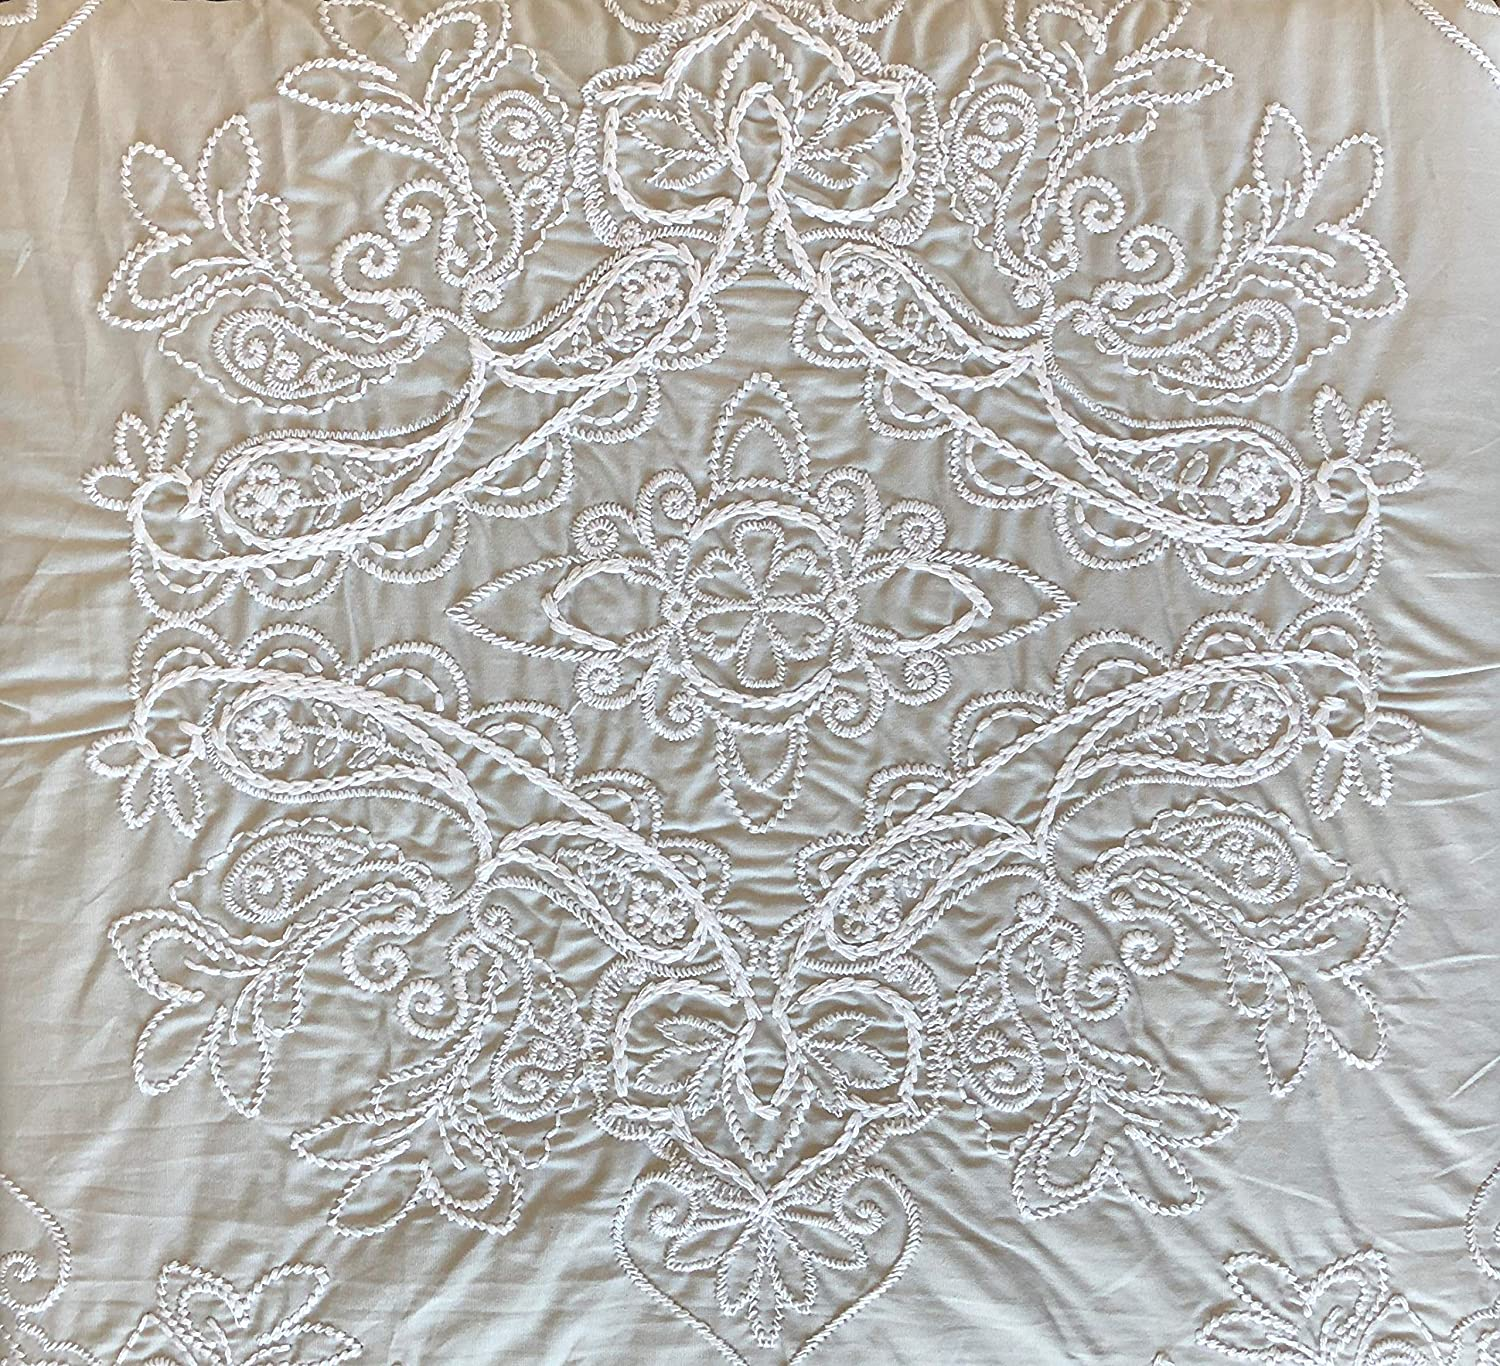 Tahari Home 3pc Duvet Cover Set Embroidered Damask Medallion Pattern White Stitching Thread on Light Gray/Tan, Imperial Embroidery (Full/Queen)